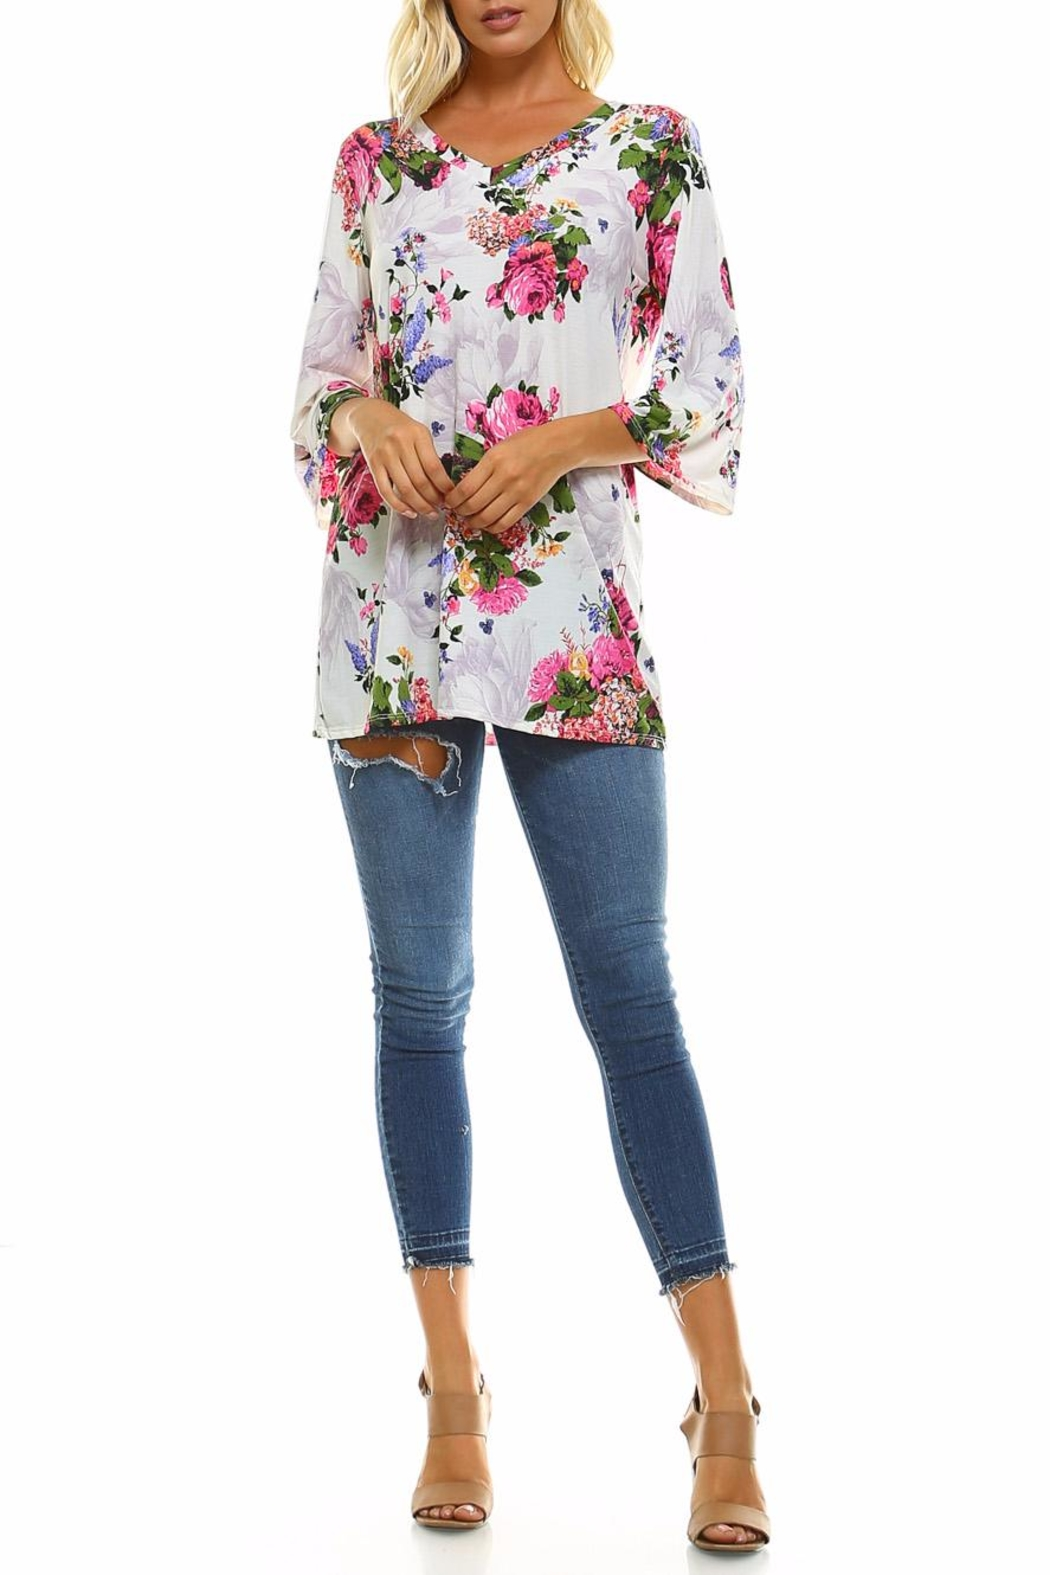 Carrie Allen Floral Knit Top - Front Full Image